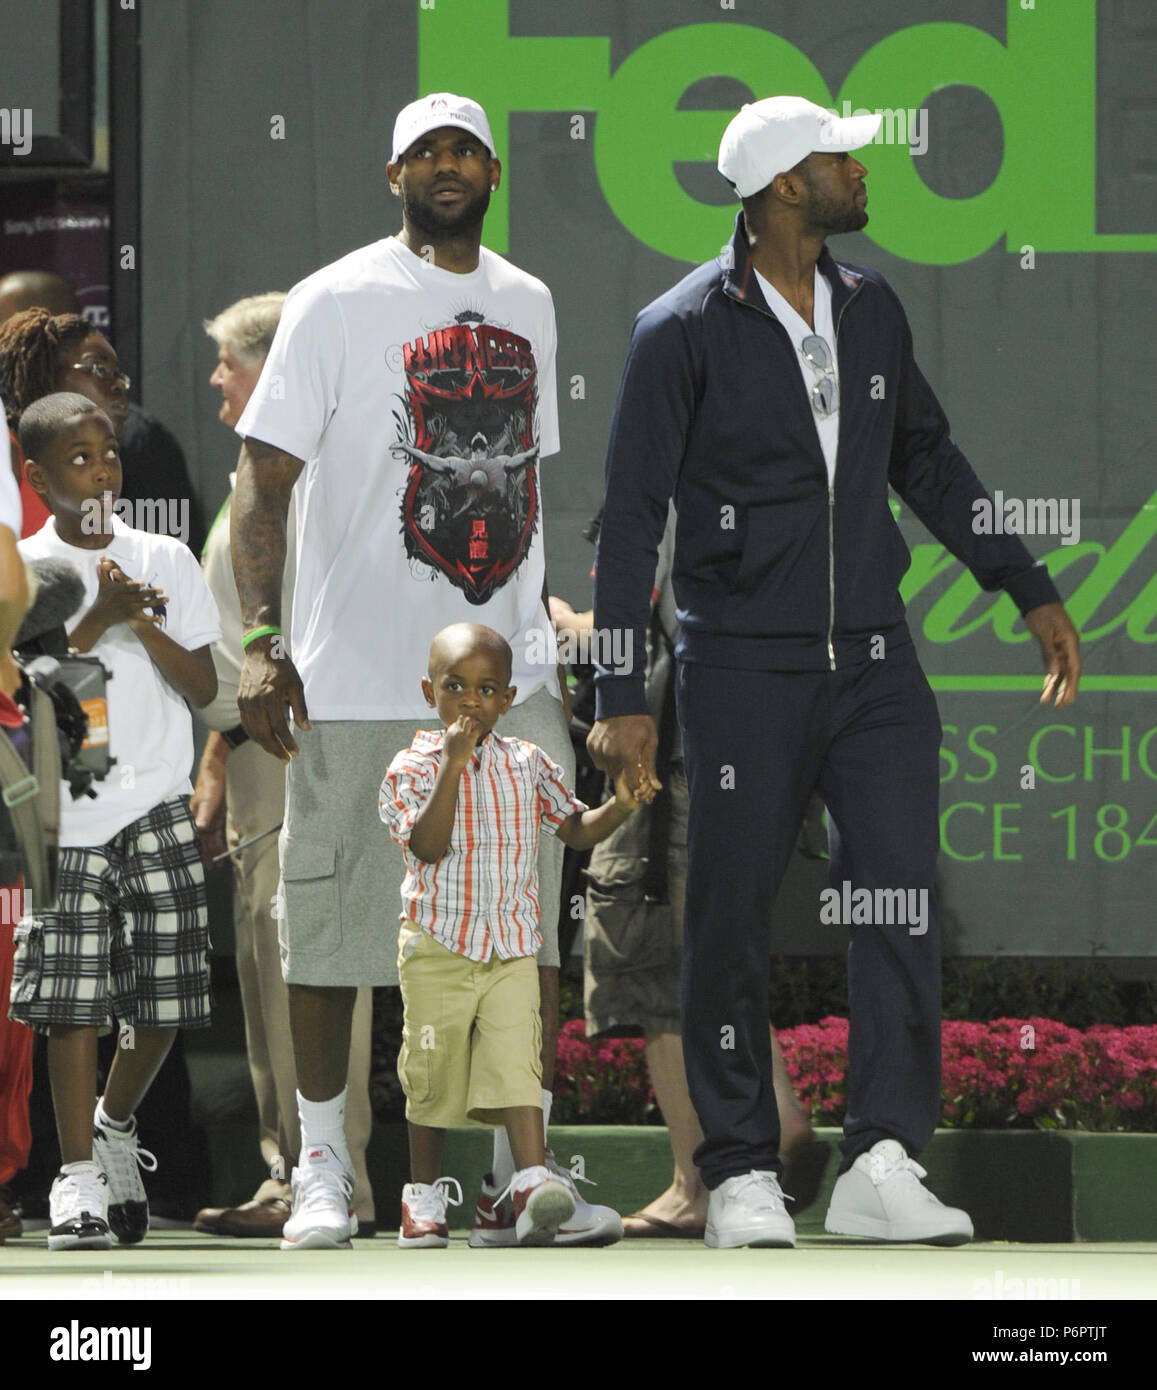 Lebron James And Dwyane Wade With Sons Stock Photos & Lebron James